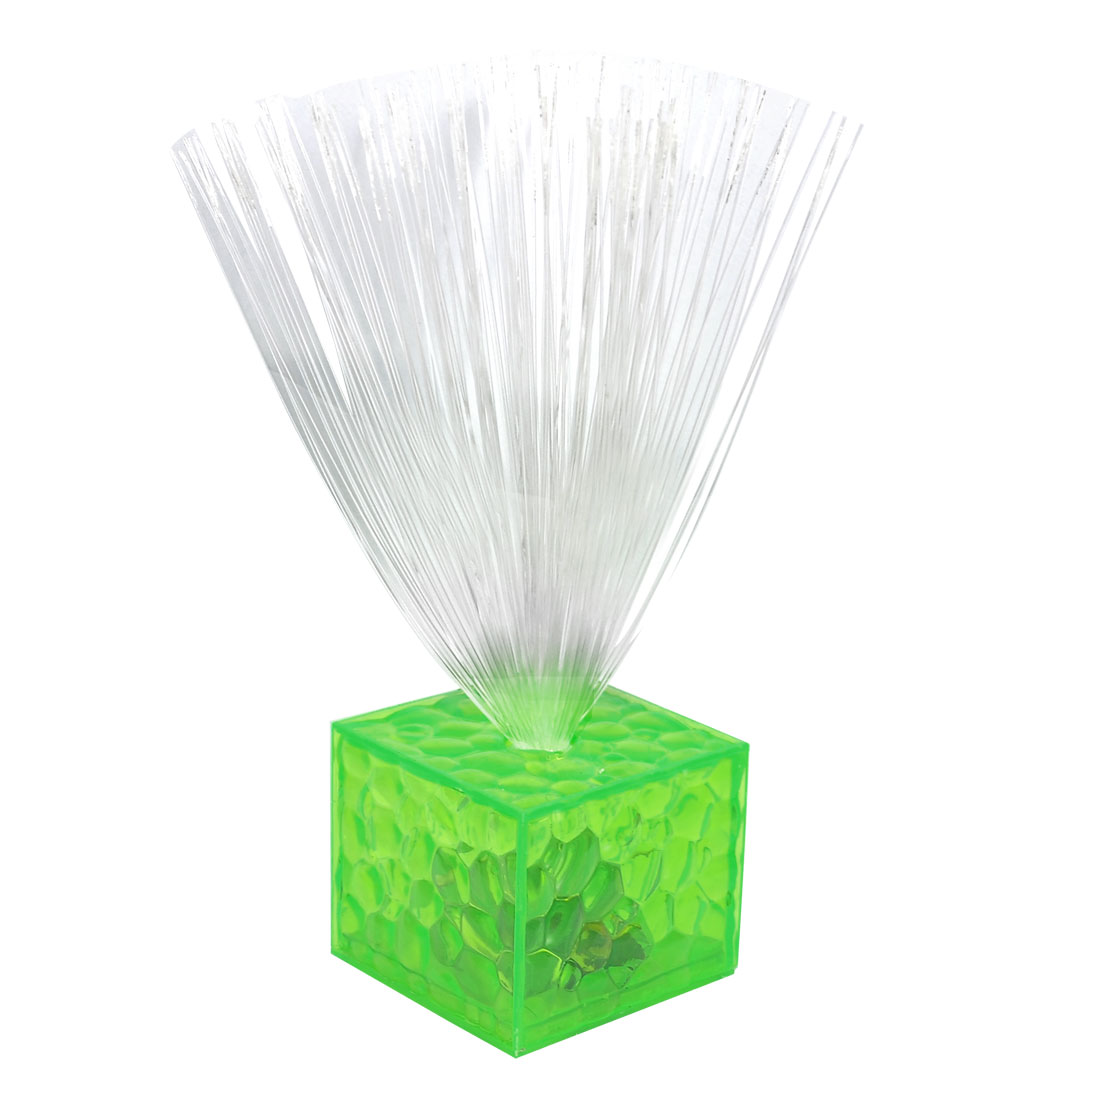 Xmas Green Cube Design 6 Colors Flash Light Optic Fiber Night Lamp Decor